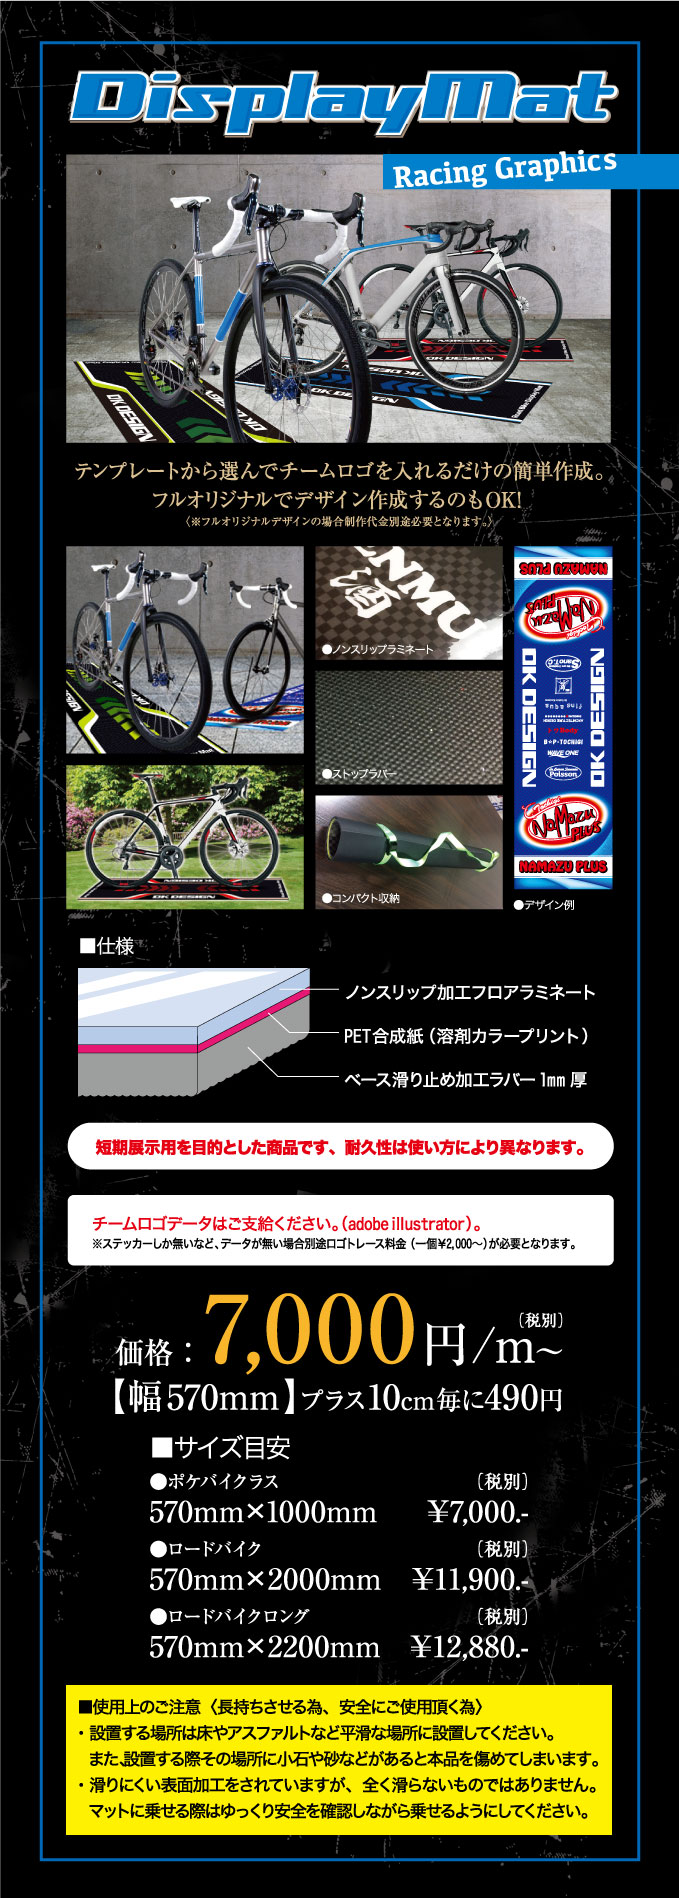 loadbike HP menu manual